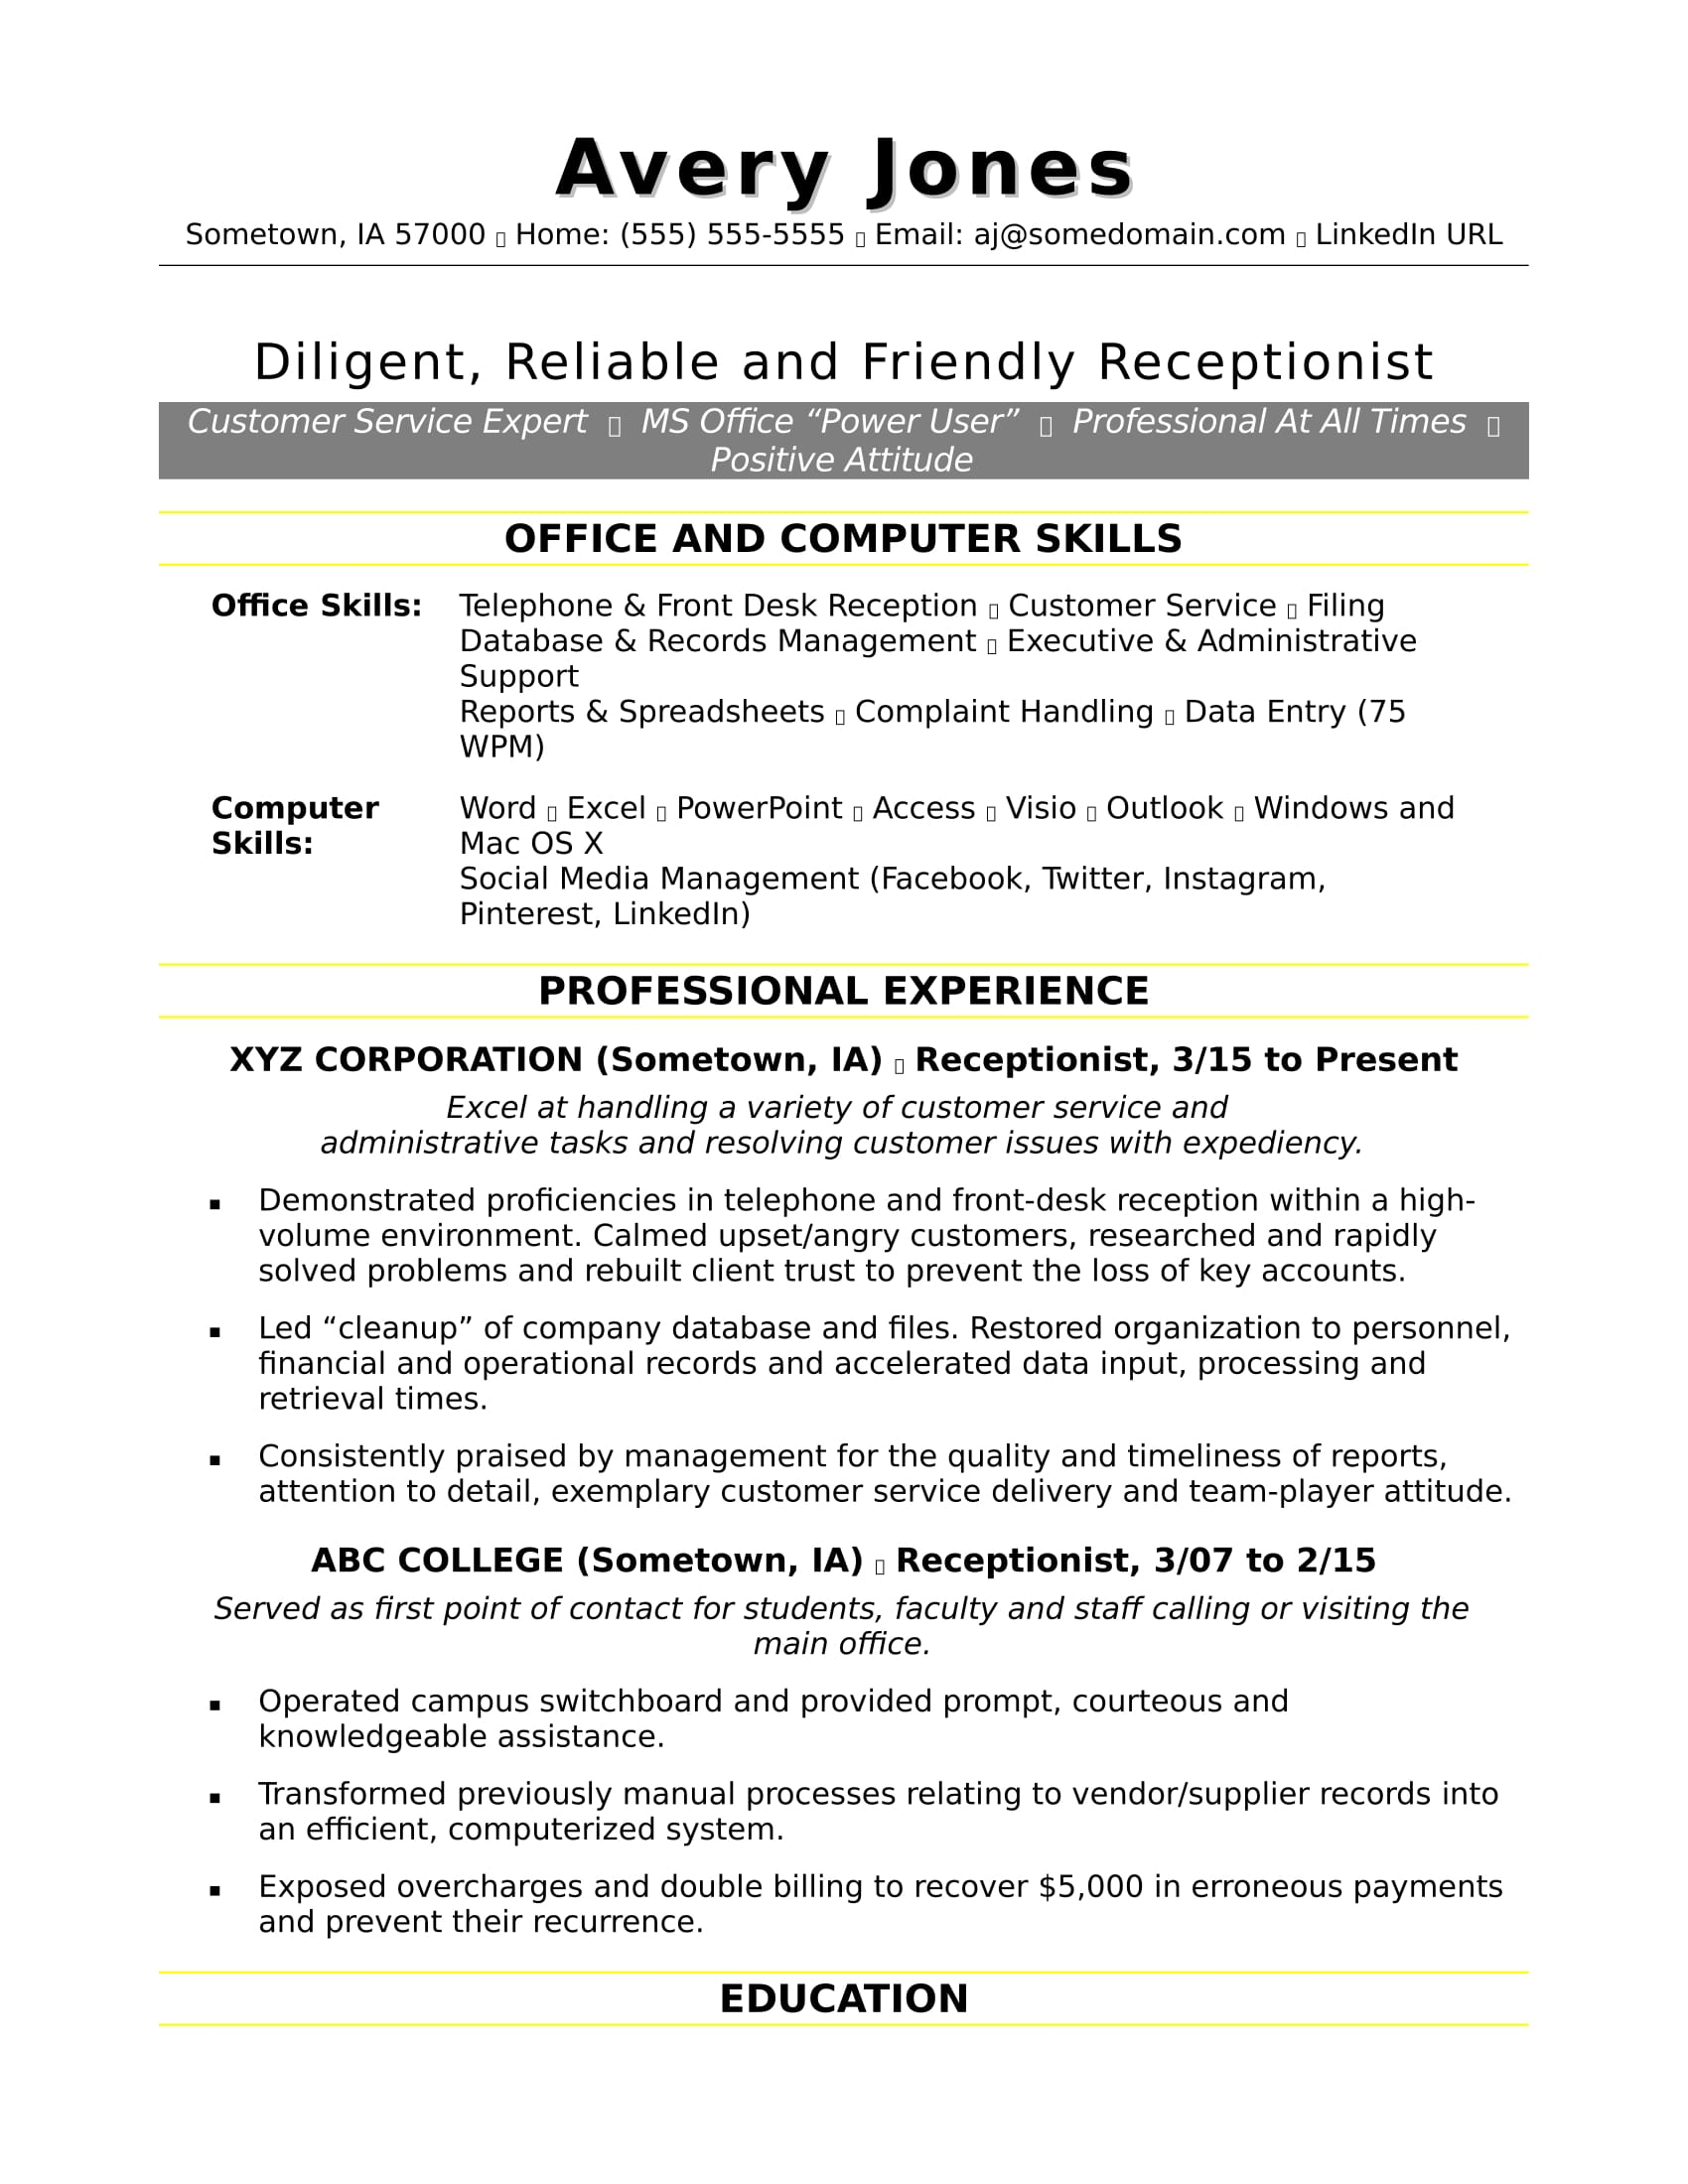 receptionist duties resume  Receptionist Resume Sample | Monster.com